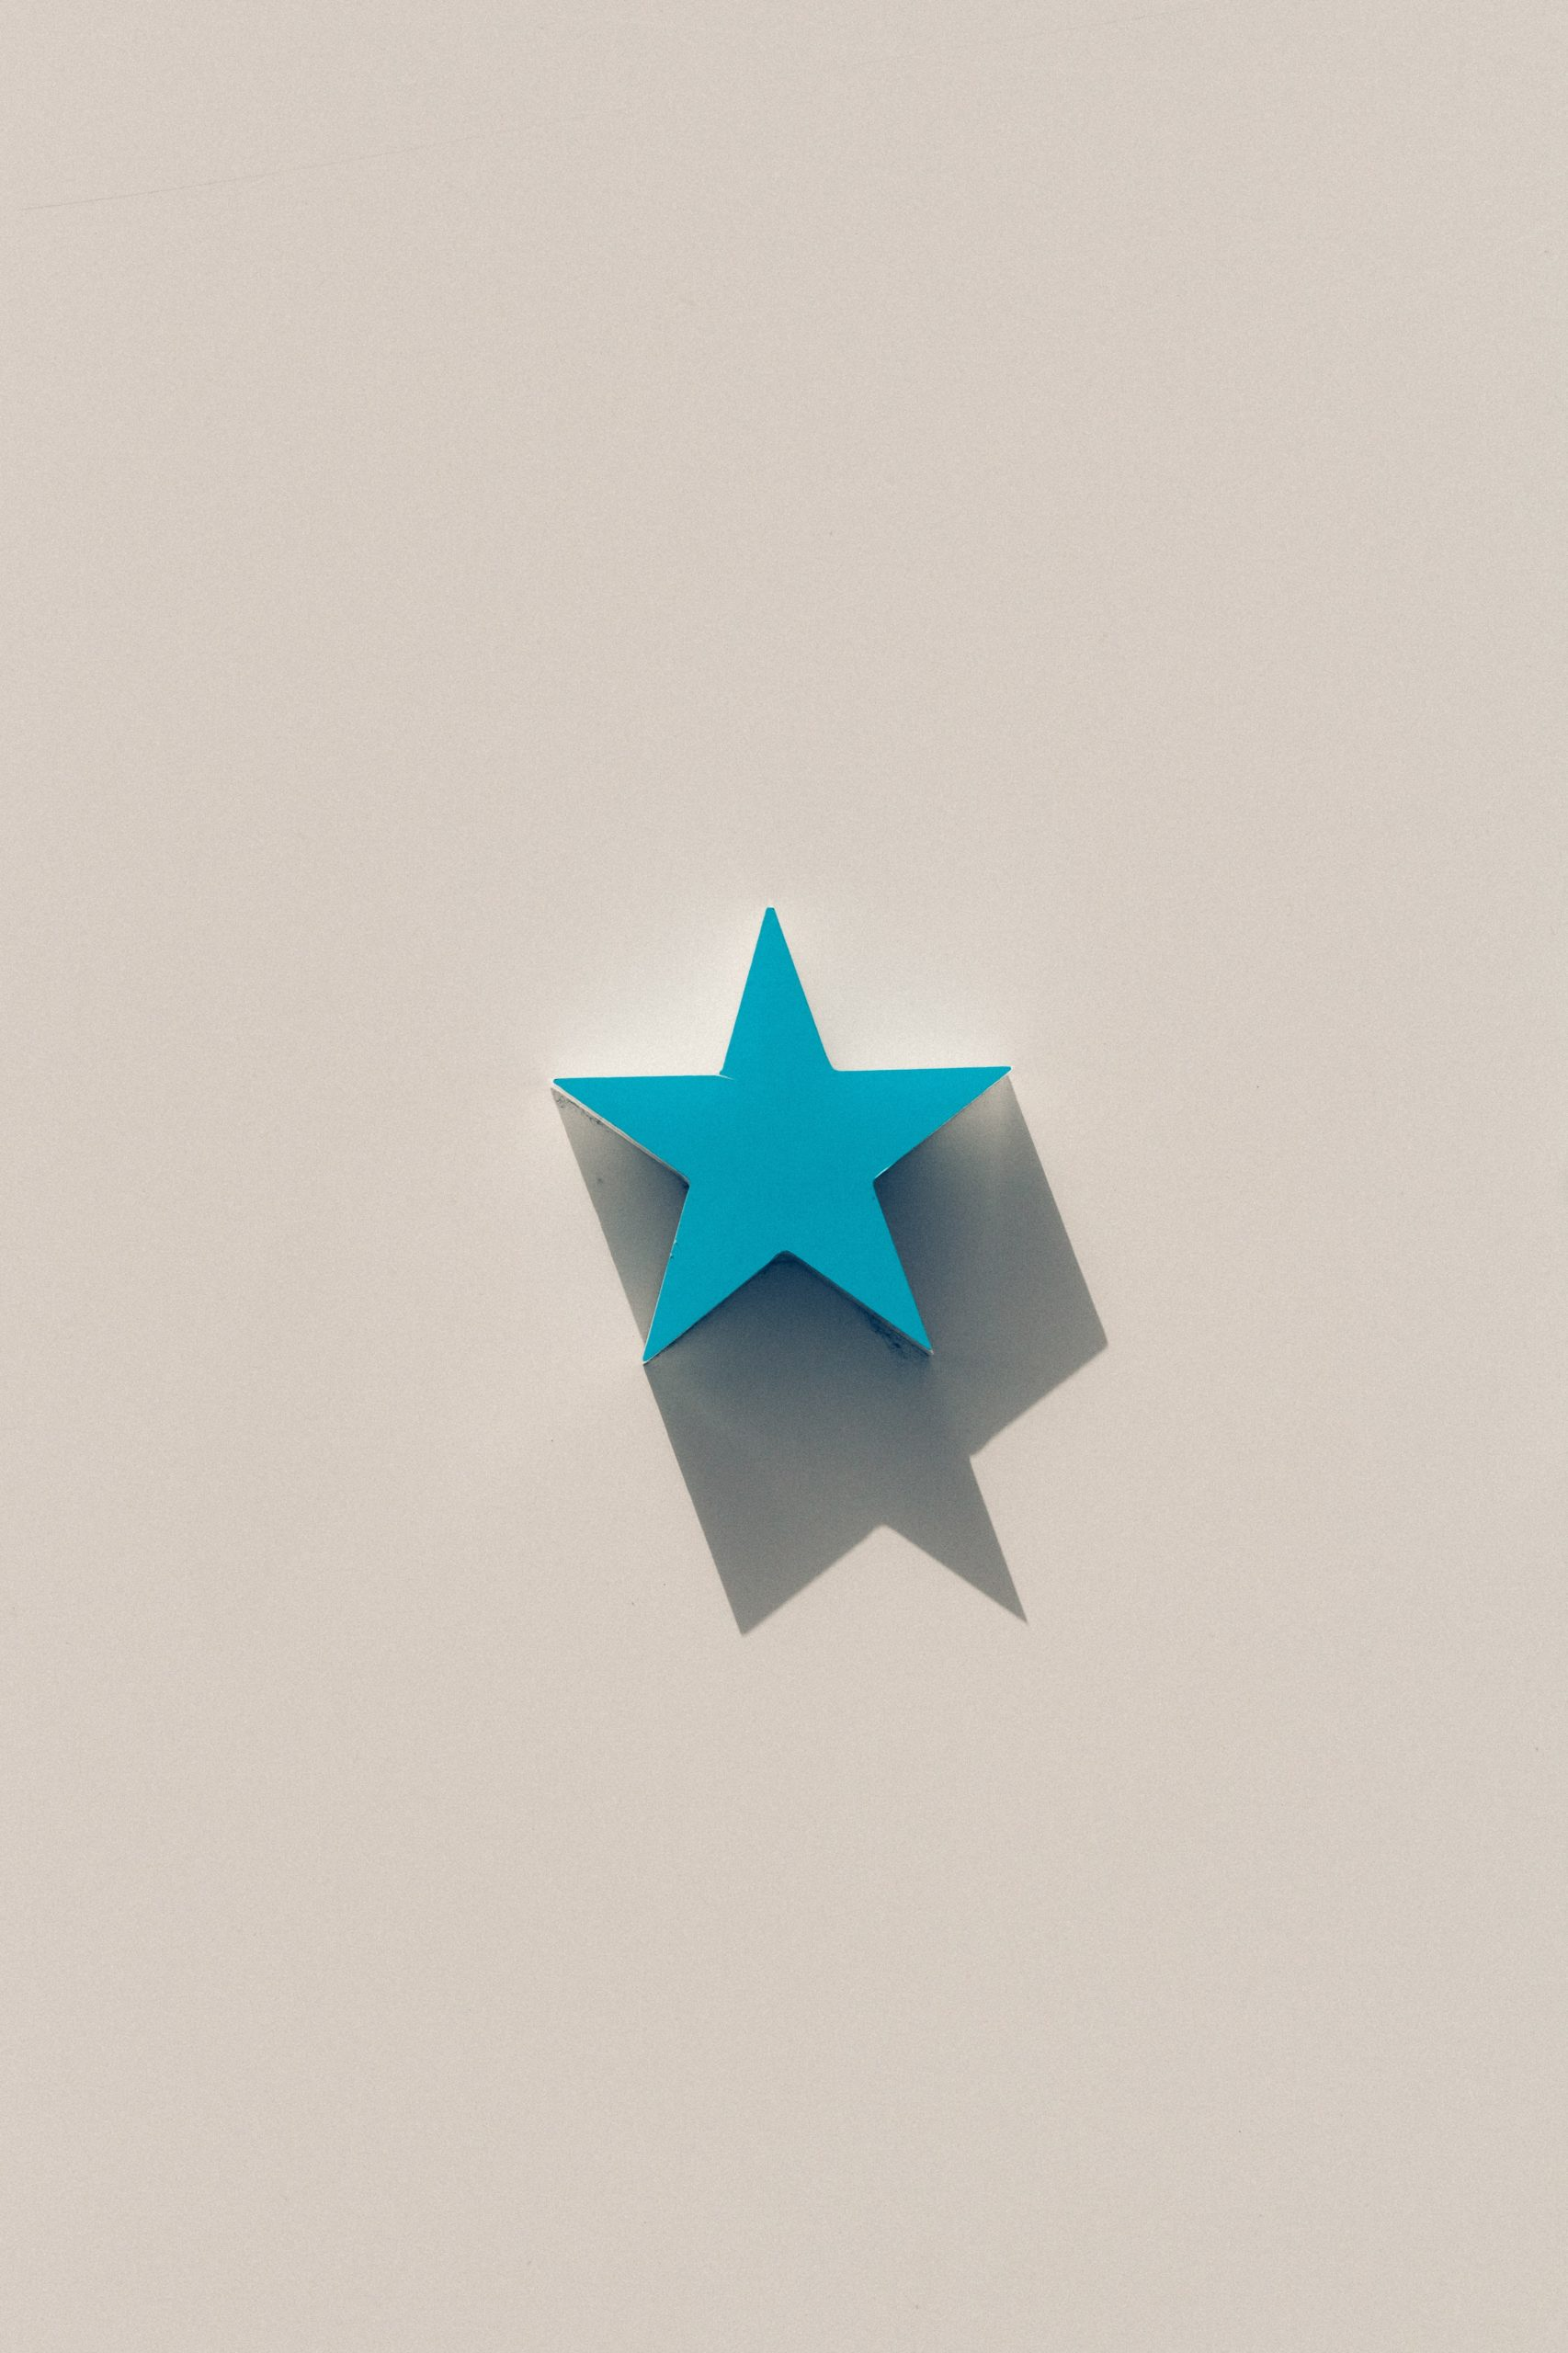 Wooden blue star on a stark background